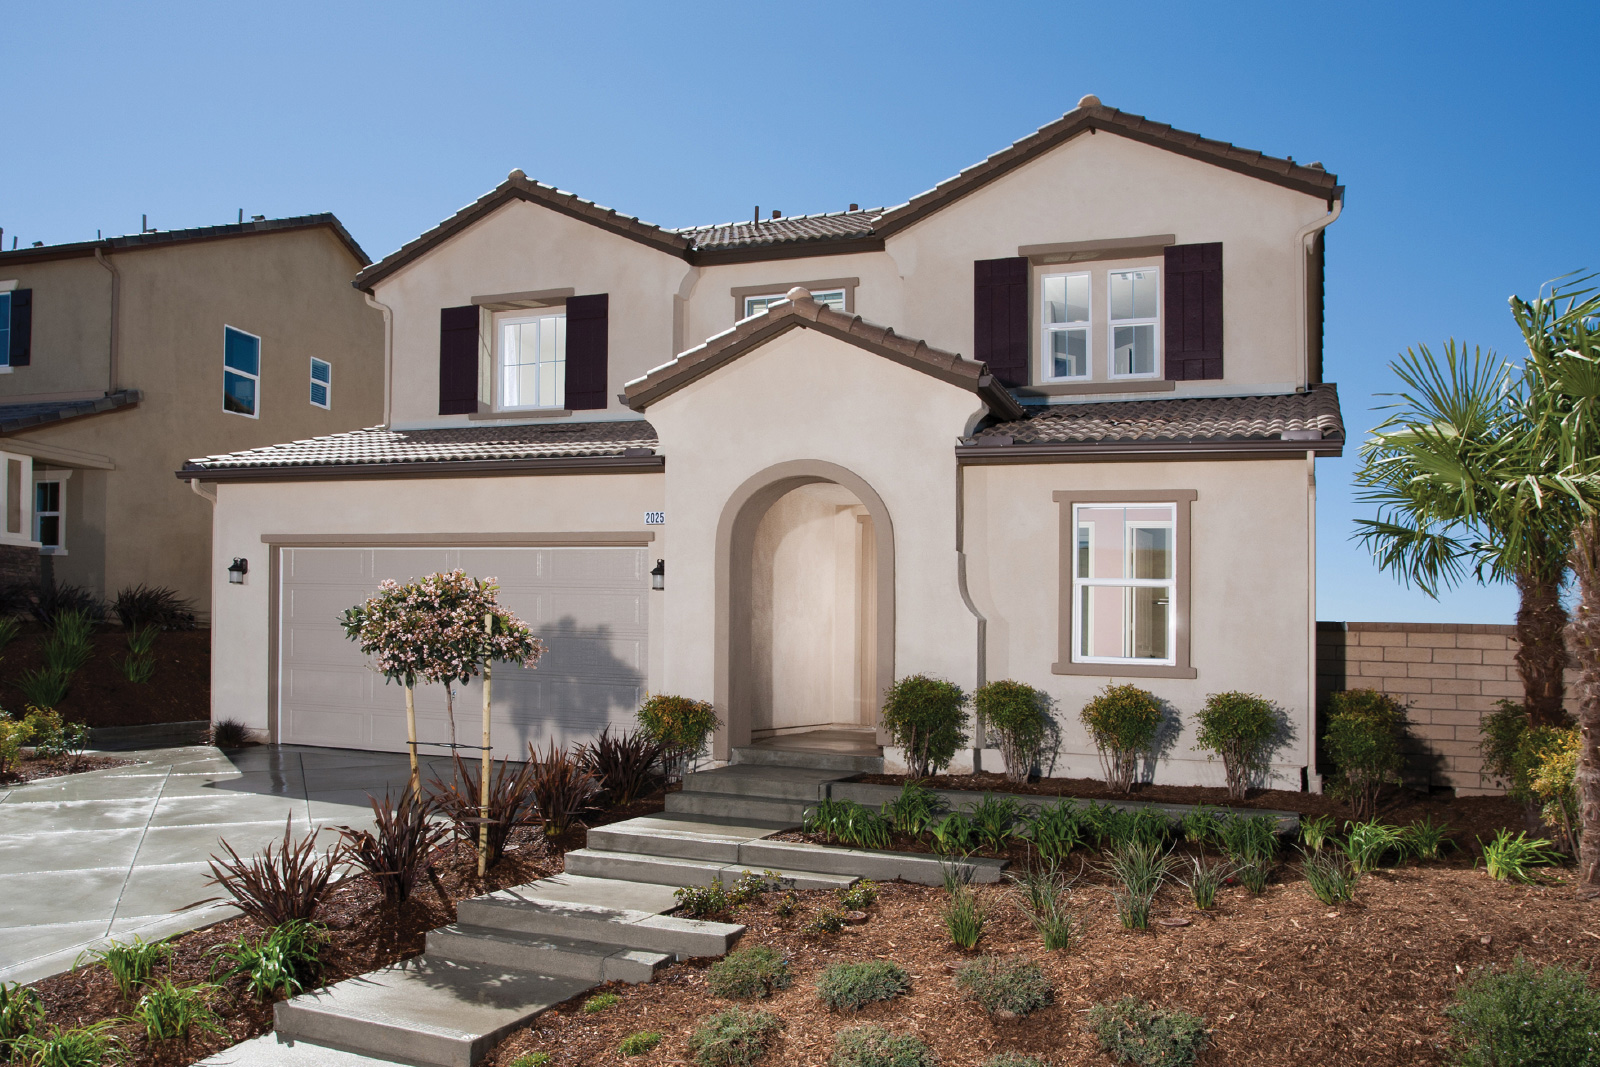 Houses for sale in los angeles kb home for New homes for sale in los angeles ca